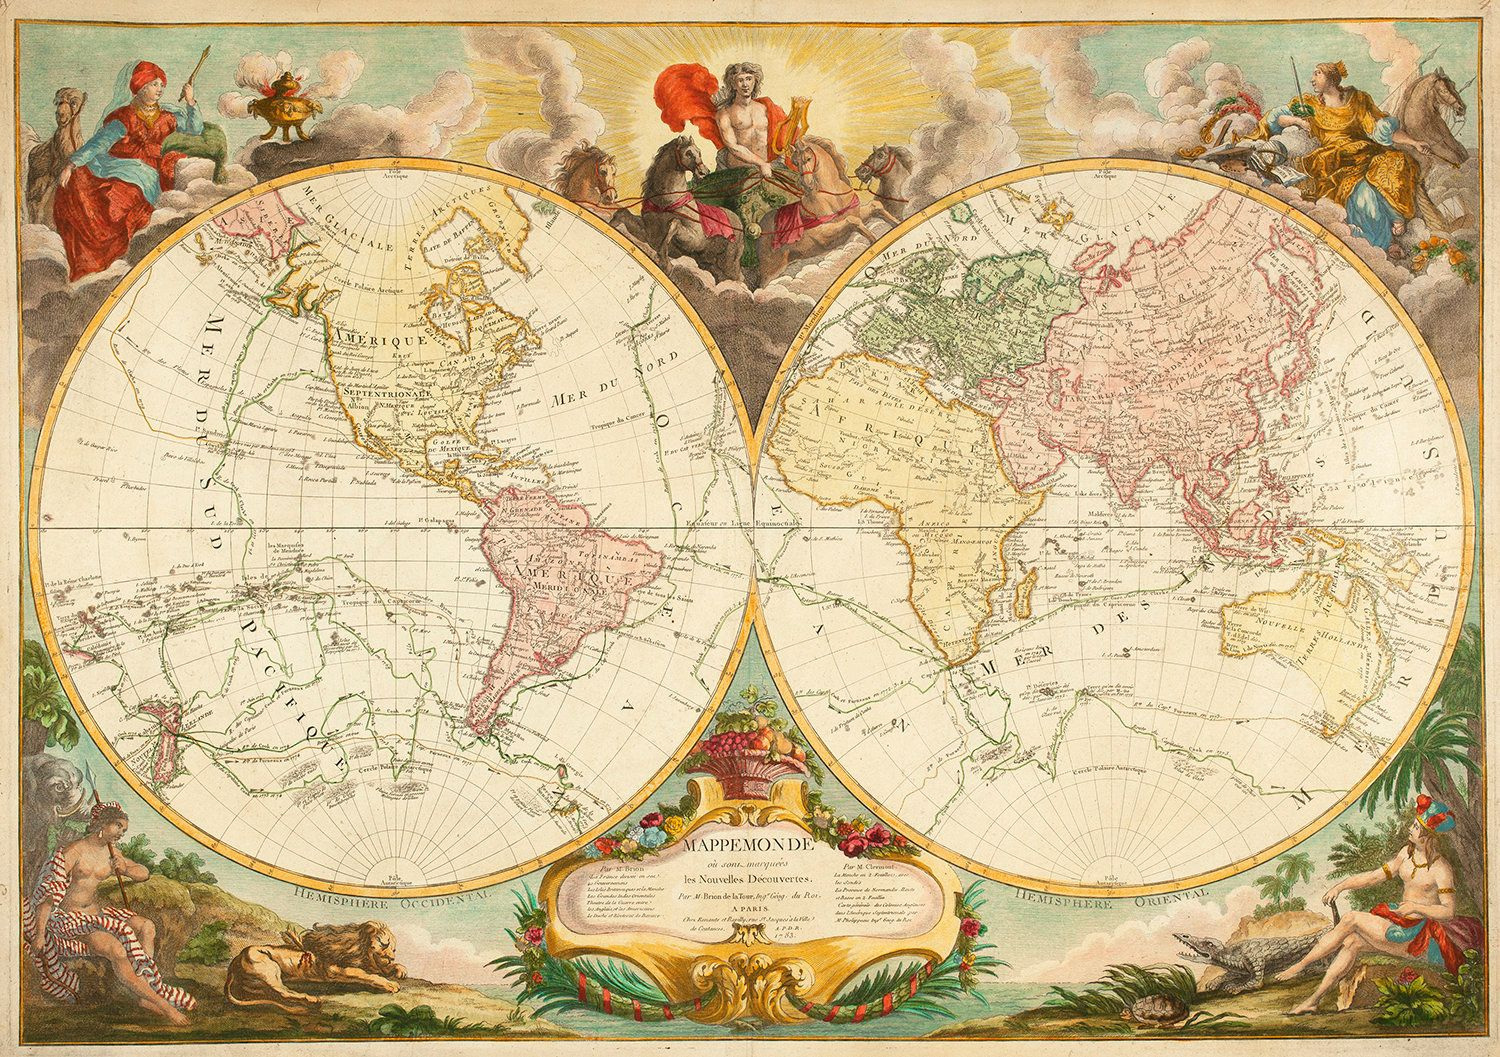 A decorative, double-hemisphere map by Louis Brion de la Tour, from 1783, which tracks the voyages of Captain James Cook.